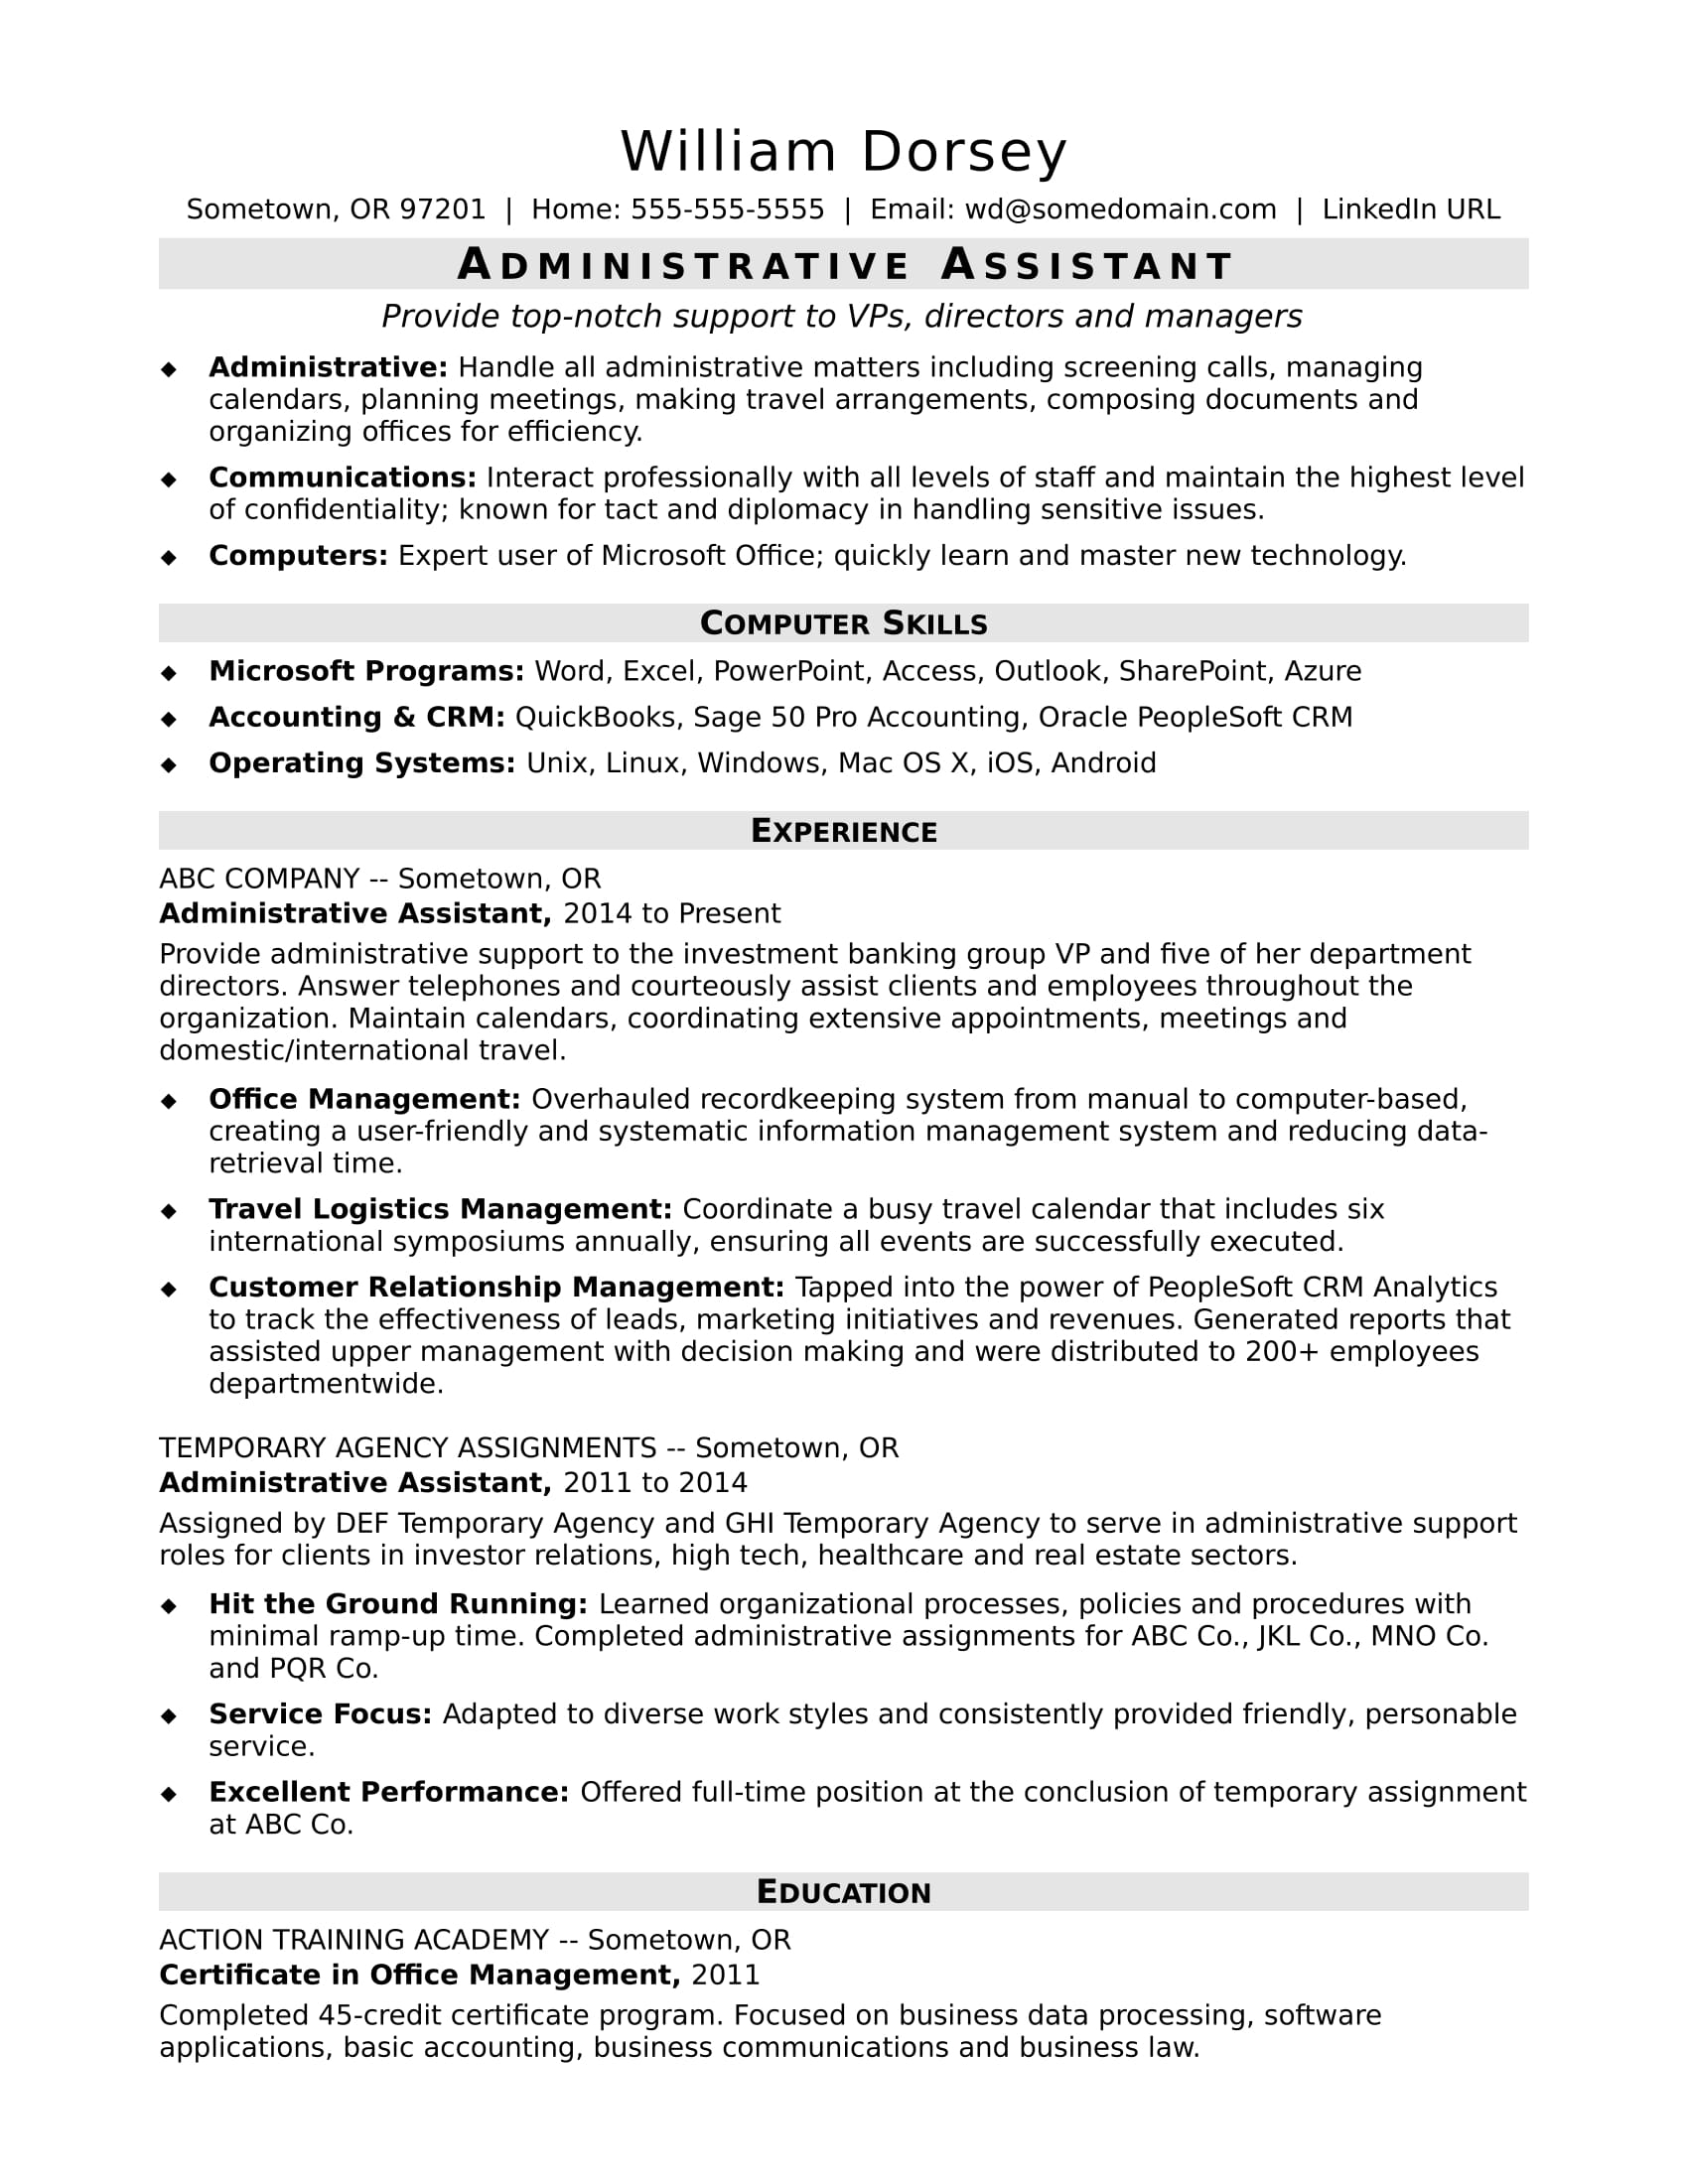 midlevel administrative assistant resume sample monster office summary cfo examples Resume Office Assistant Resume Summary